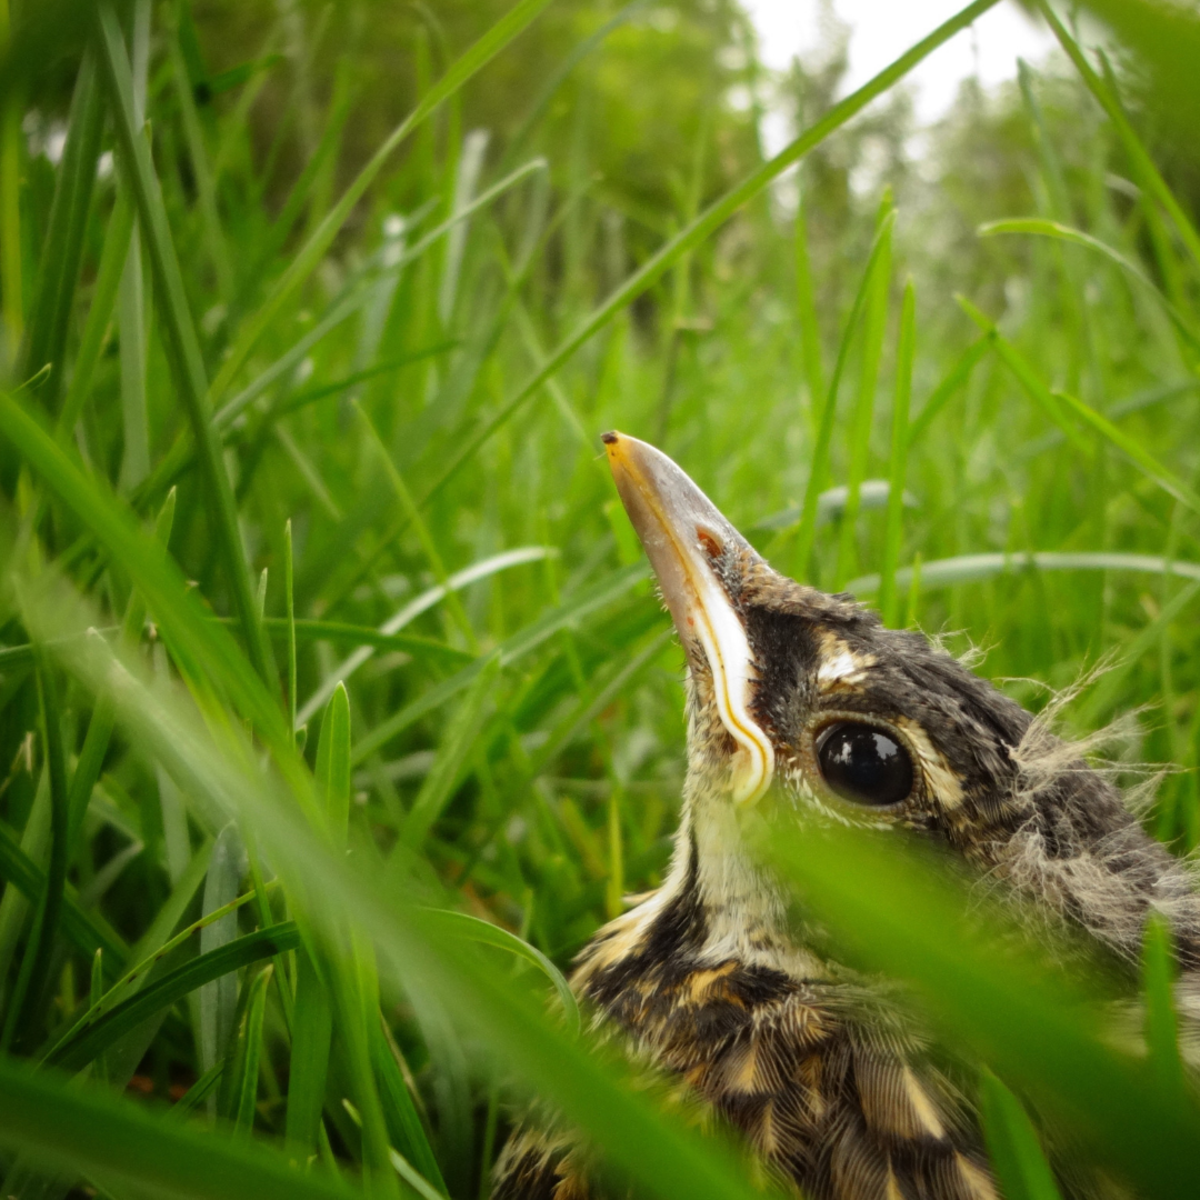 Sometimes less is more when caring for an orphaned baby bird—take them to a wildlife center.